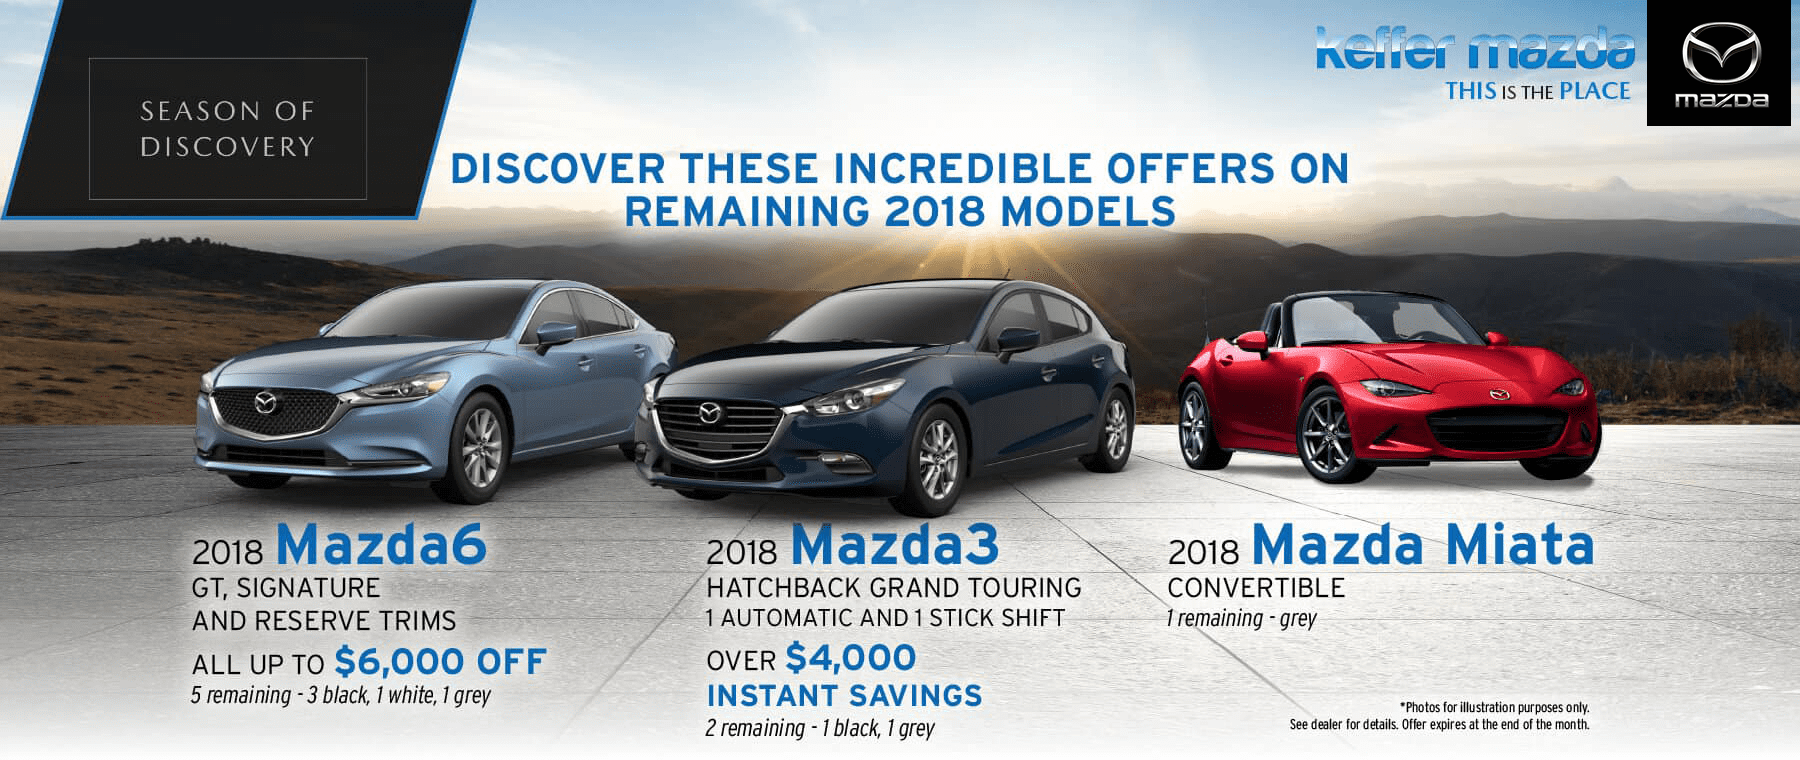 Discover These Incredible Offers on Remaining 2018 Models